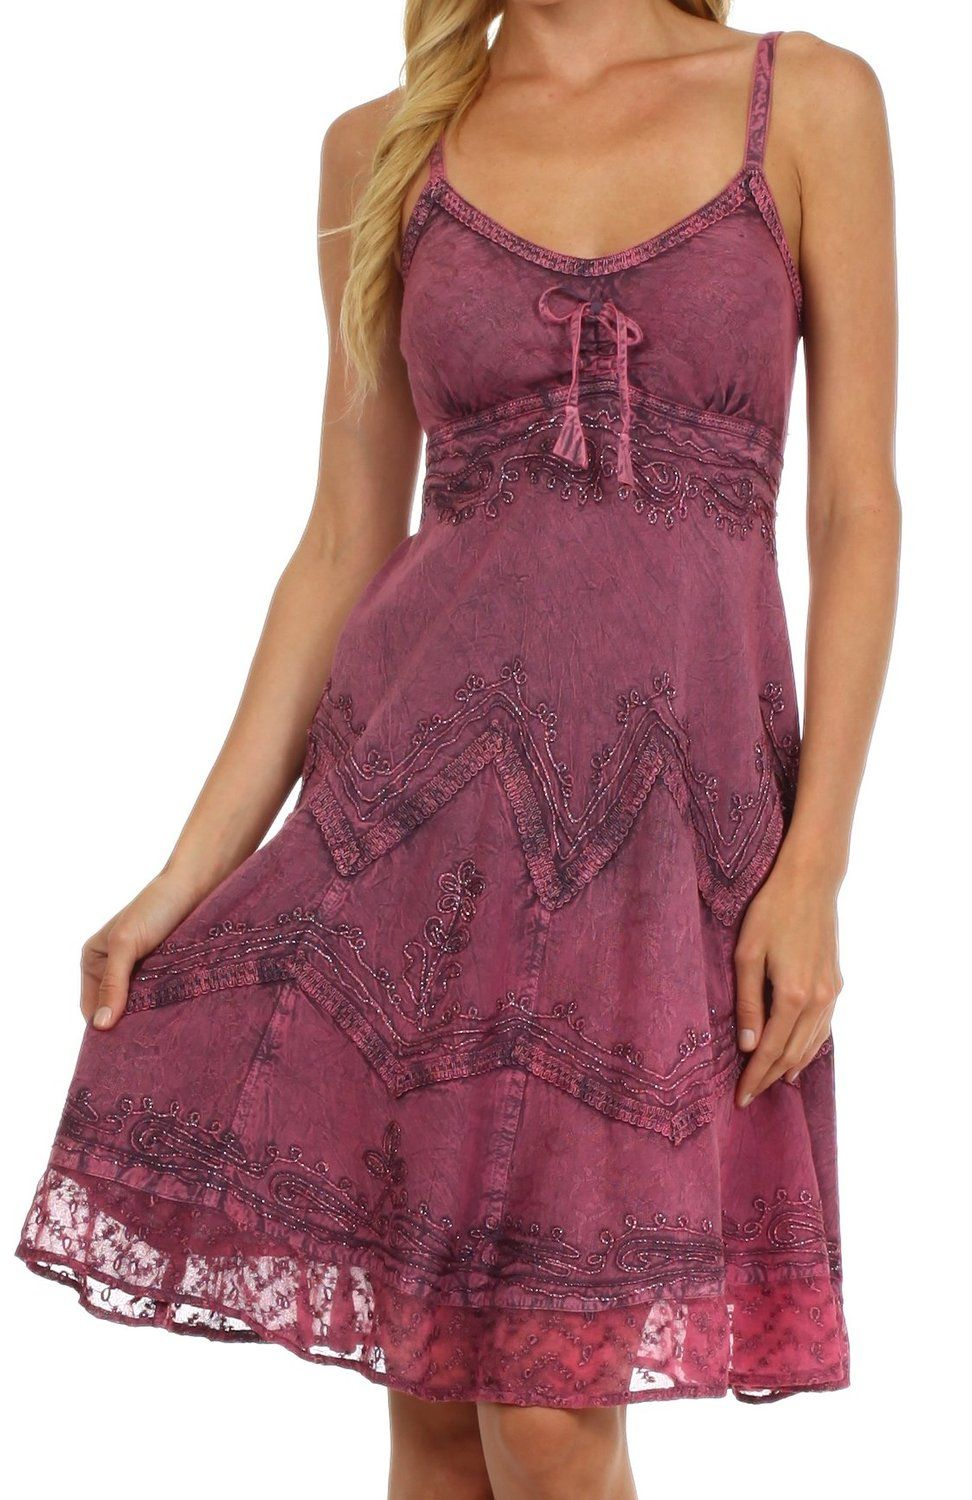 Summer Dress to wear with Cowboy Boots | Vestuario-Outfits | Pinterest